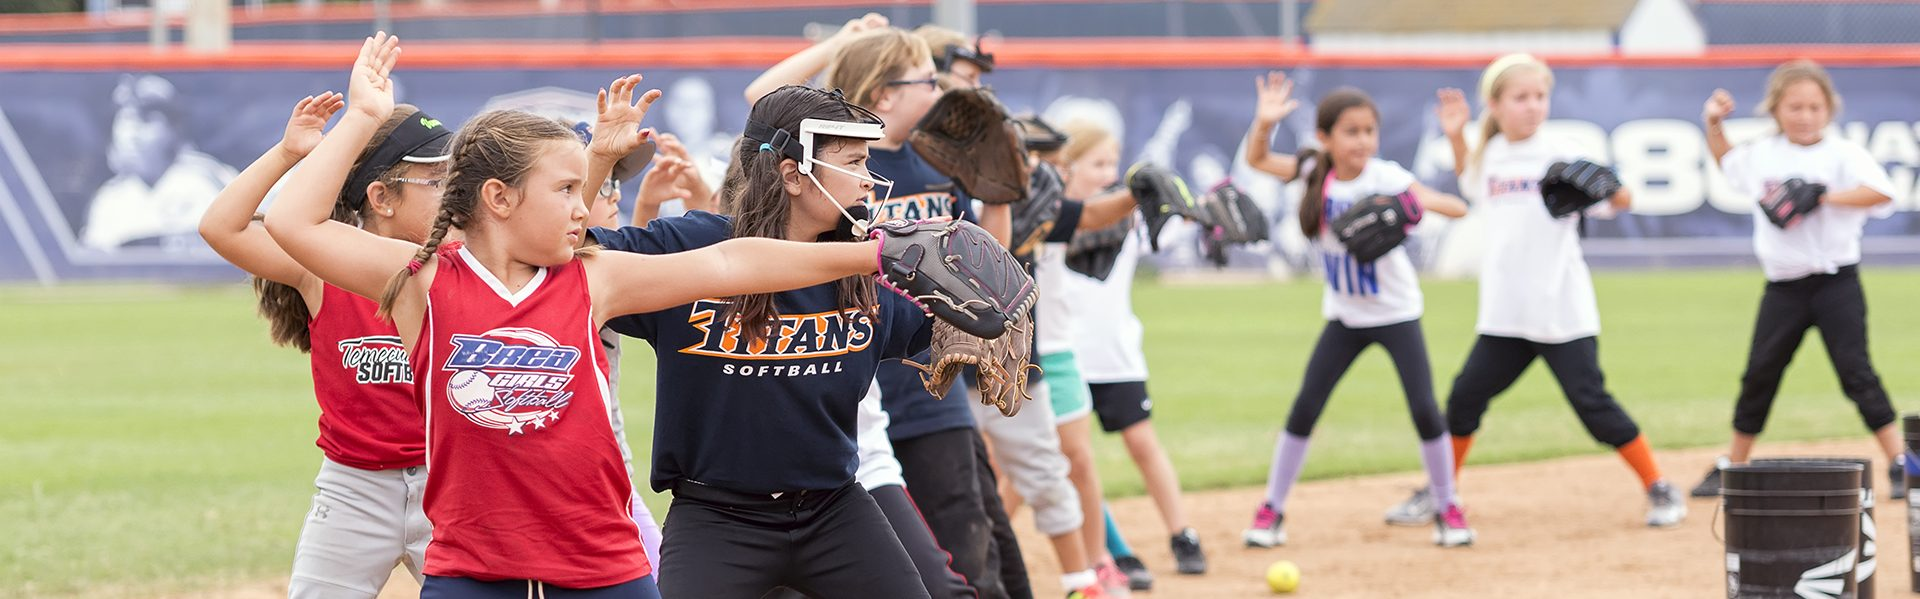 TITAN SOFTBALL CAMPS